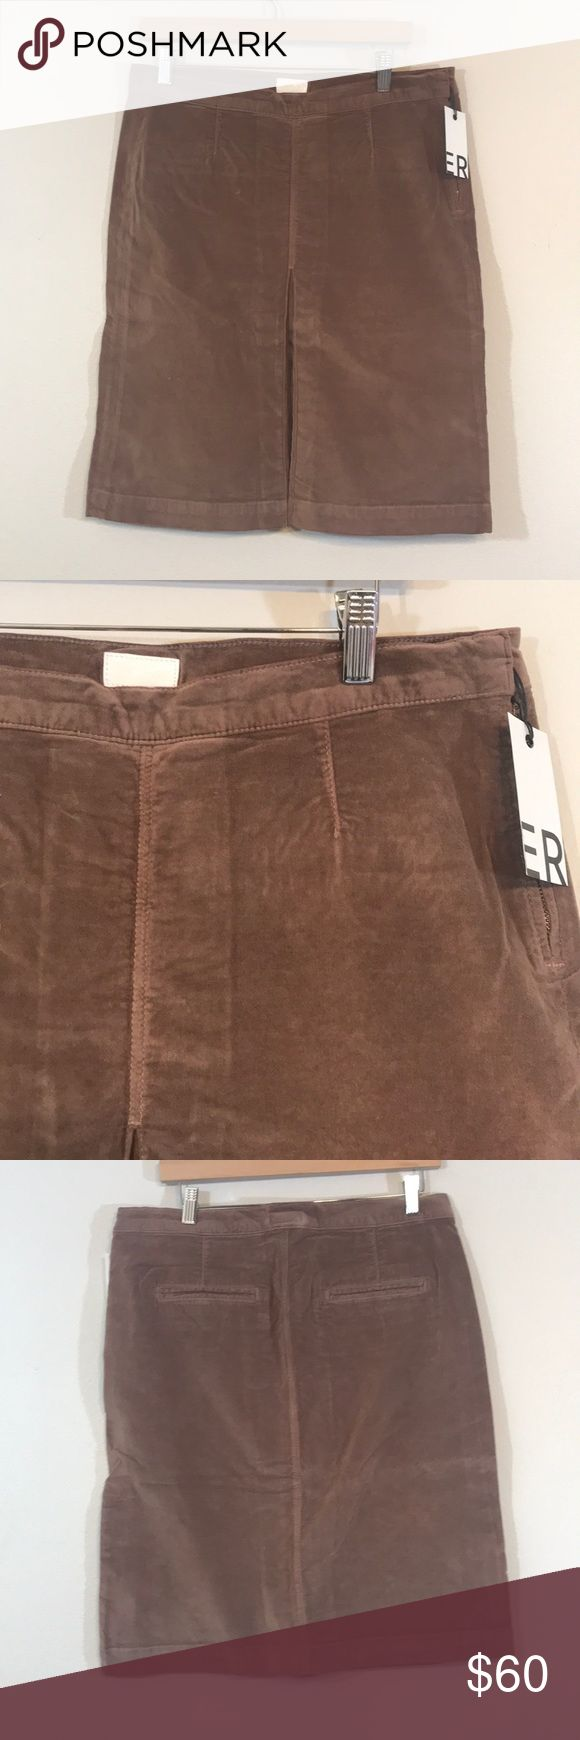 Mother velour skirt Brand new with tags MOTHER Skirts Pencil